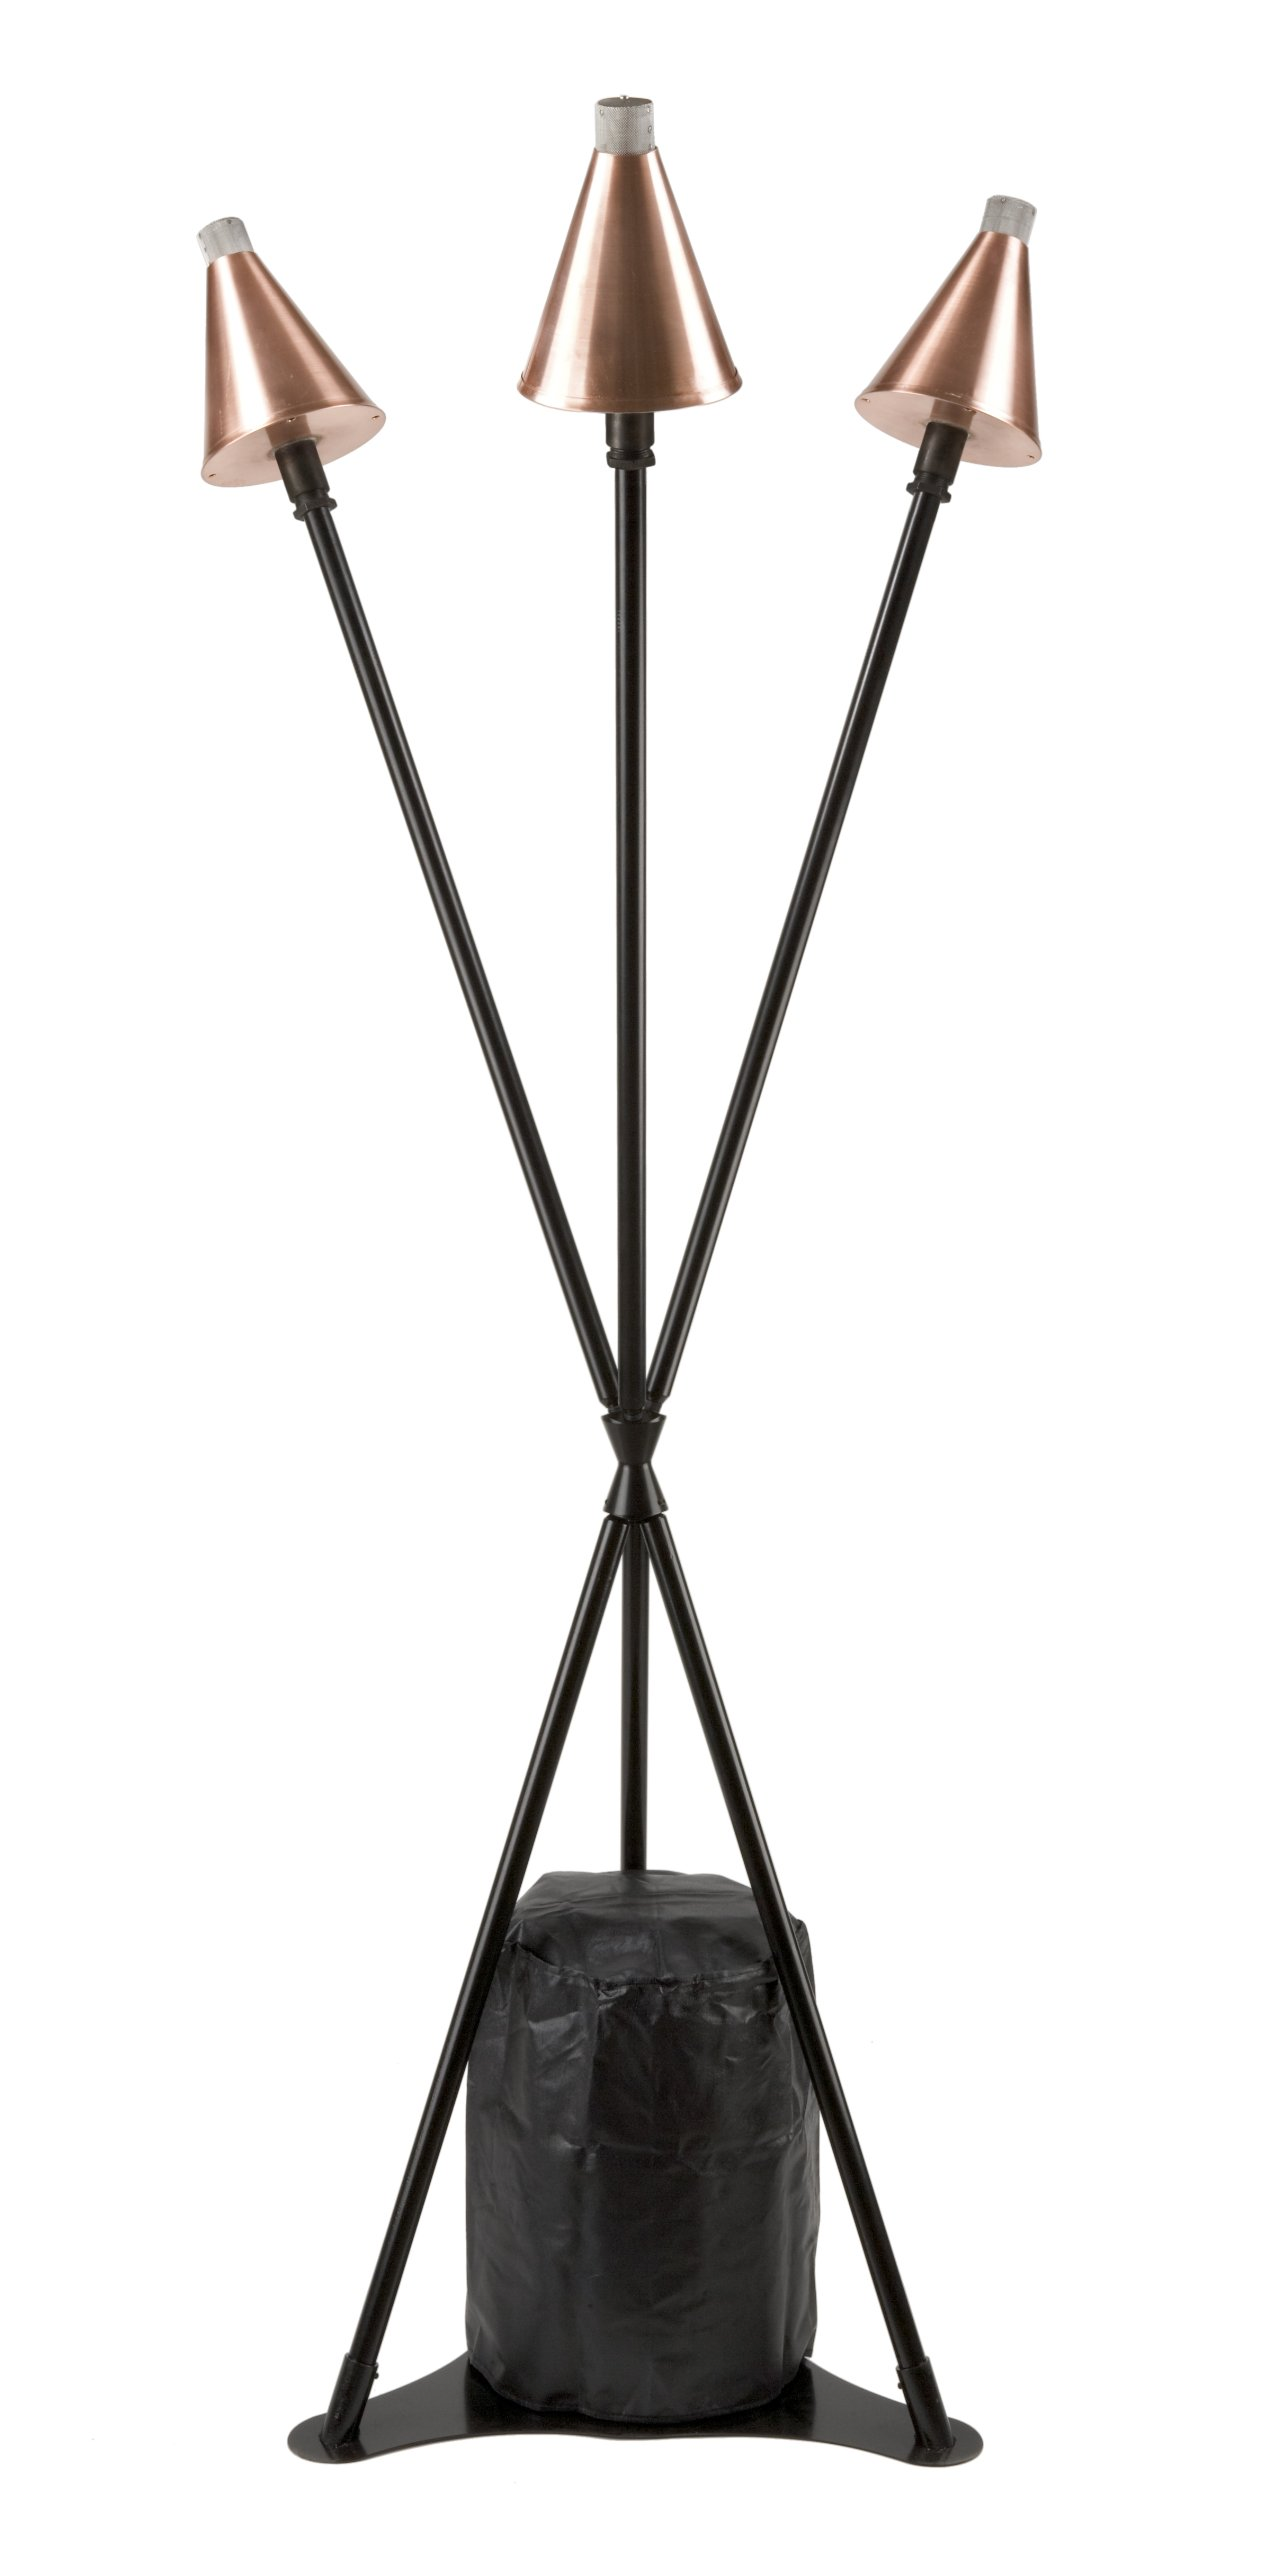 Burnaby Manufacturing 3-Head Propane Tiki Torch Stand, Copper Color by Burnaby Manufacturing Ltd